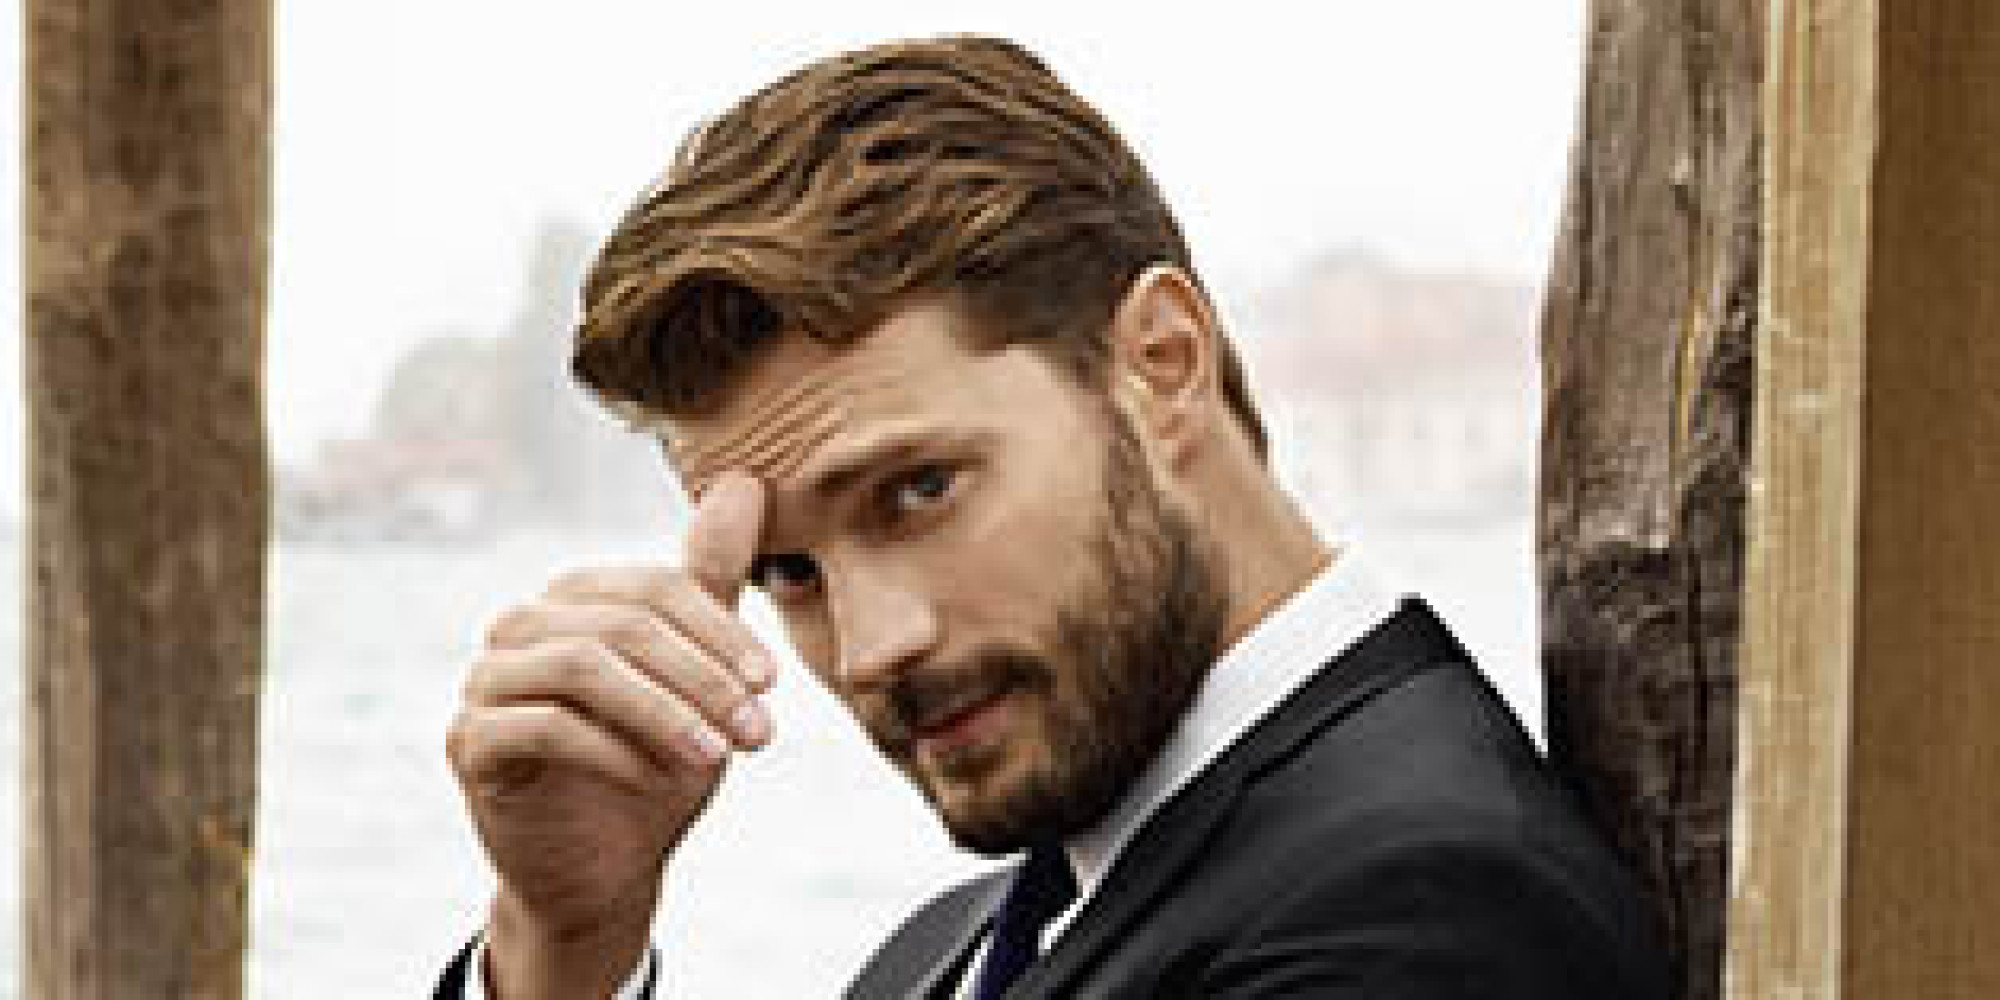 jamie dornan poses in ads for hogan giving his best christian grey eyes huffpost. Black Bedroom Furniture Sets. Home Design Ideas